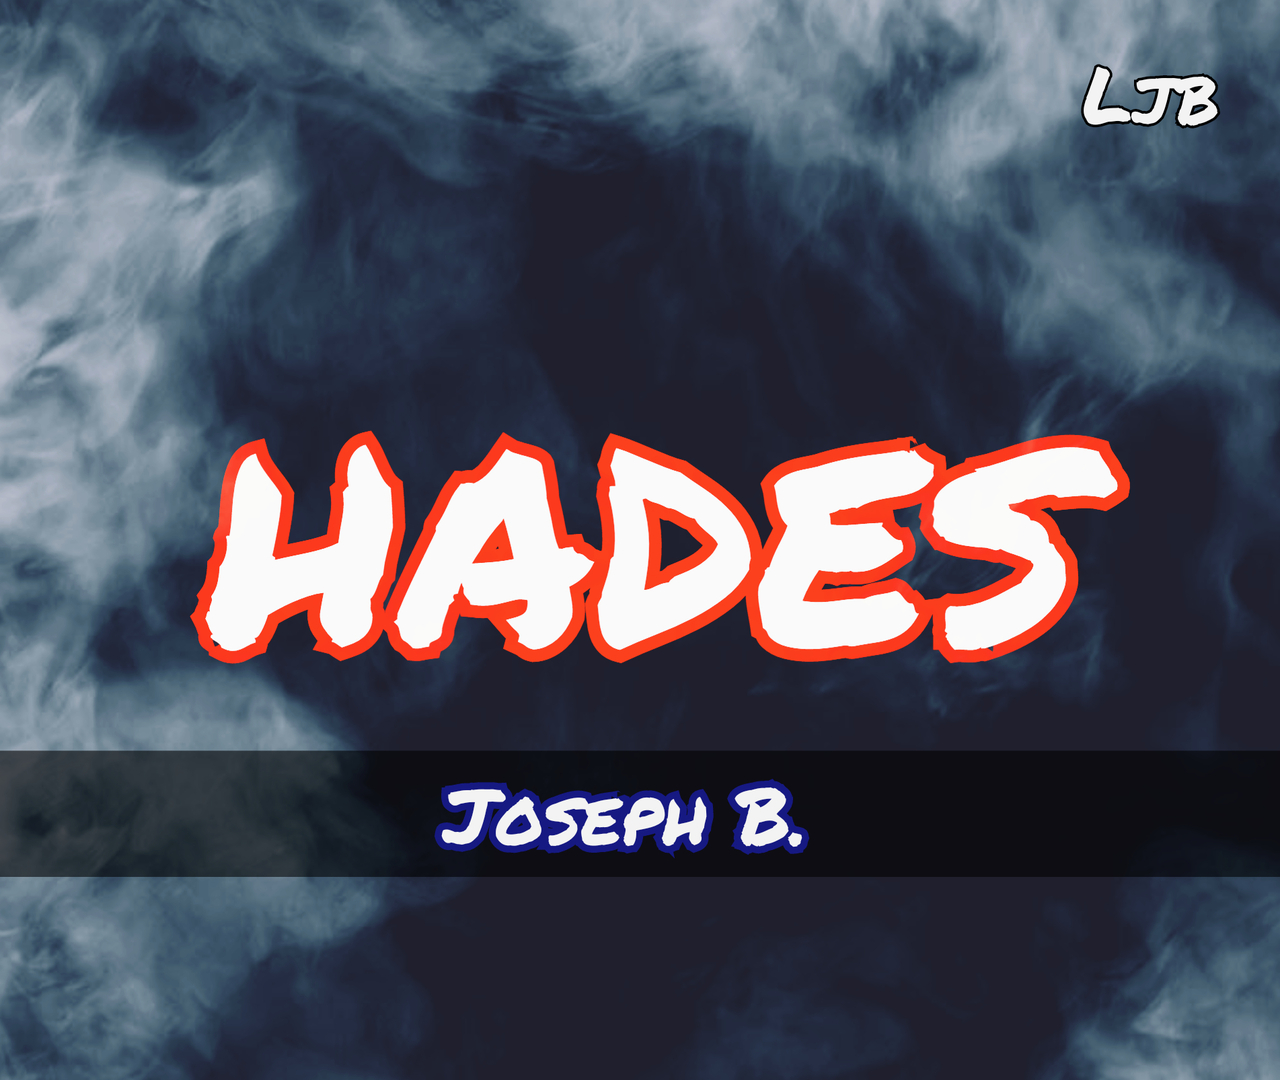 HADES by Joseph B. Instant Download